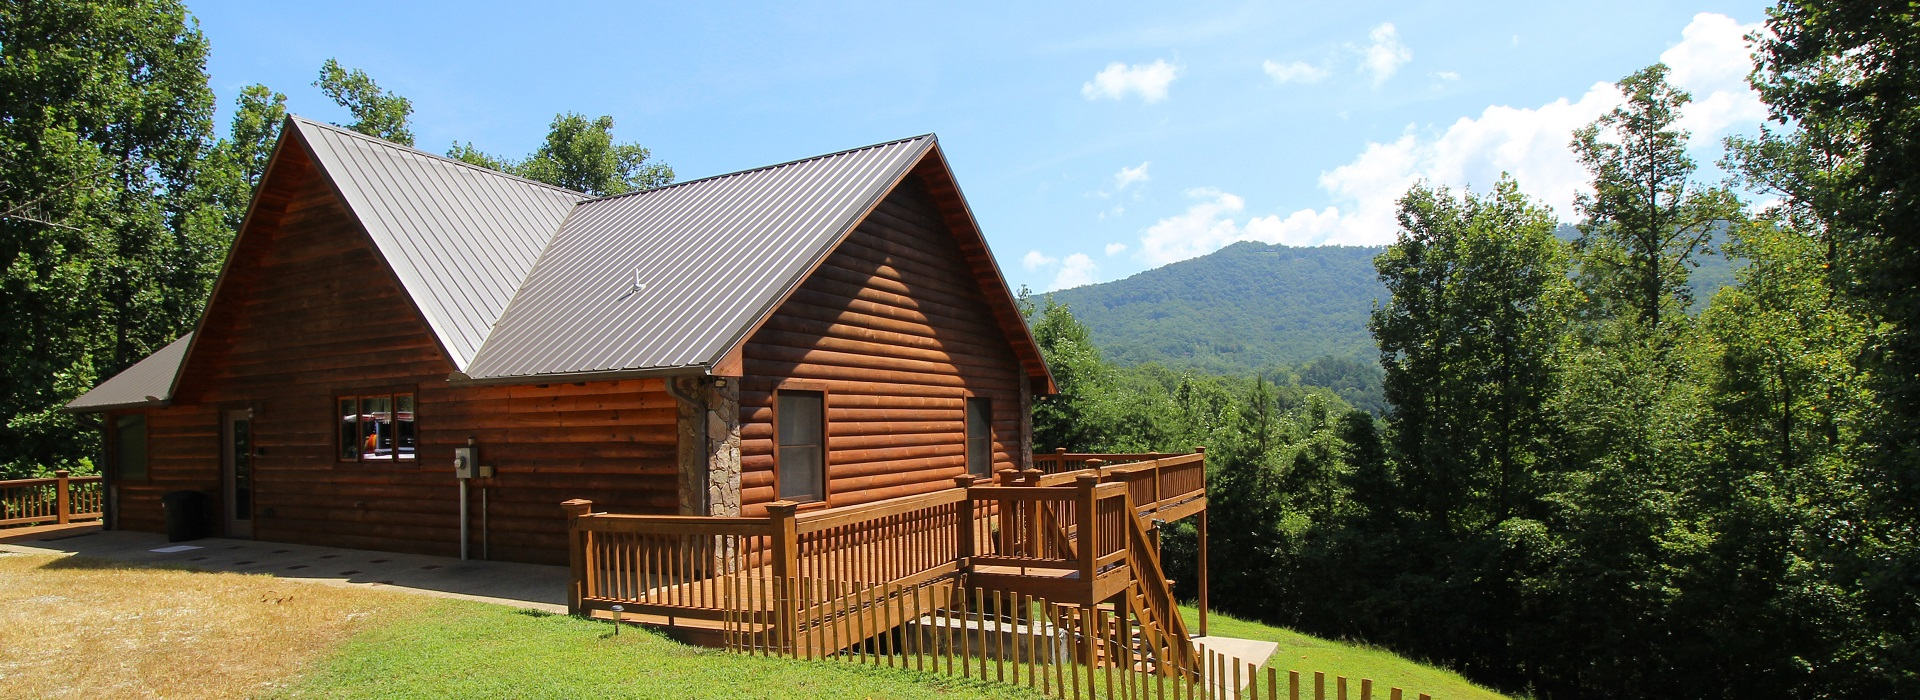 s rental log tennessee cabins cabin molly best in rentals gatlinburg